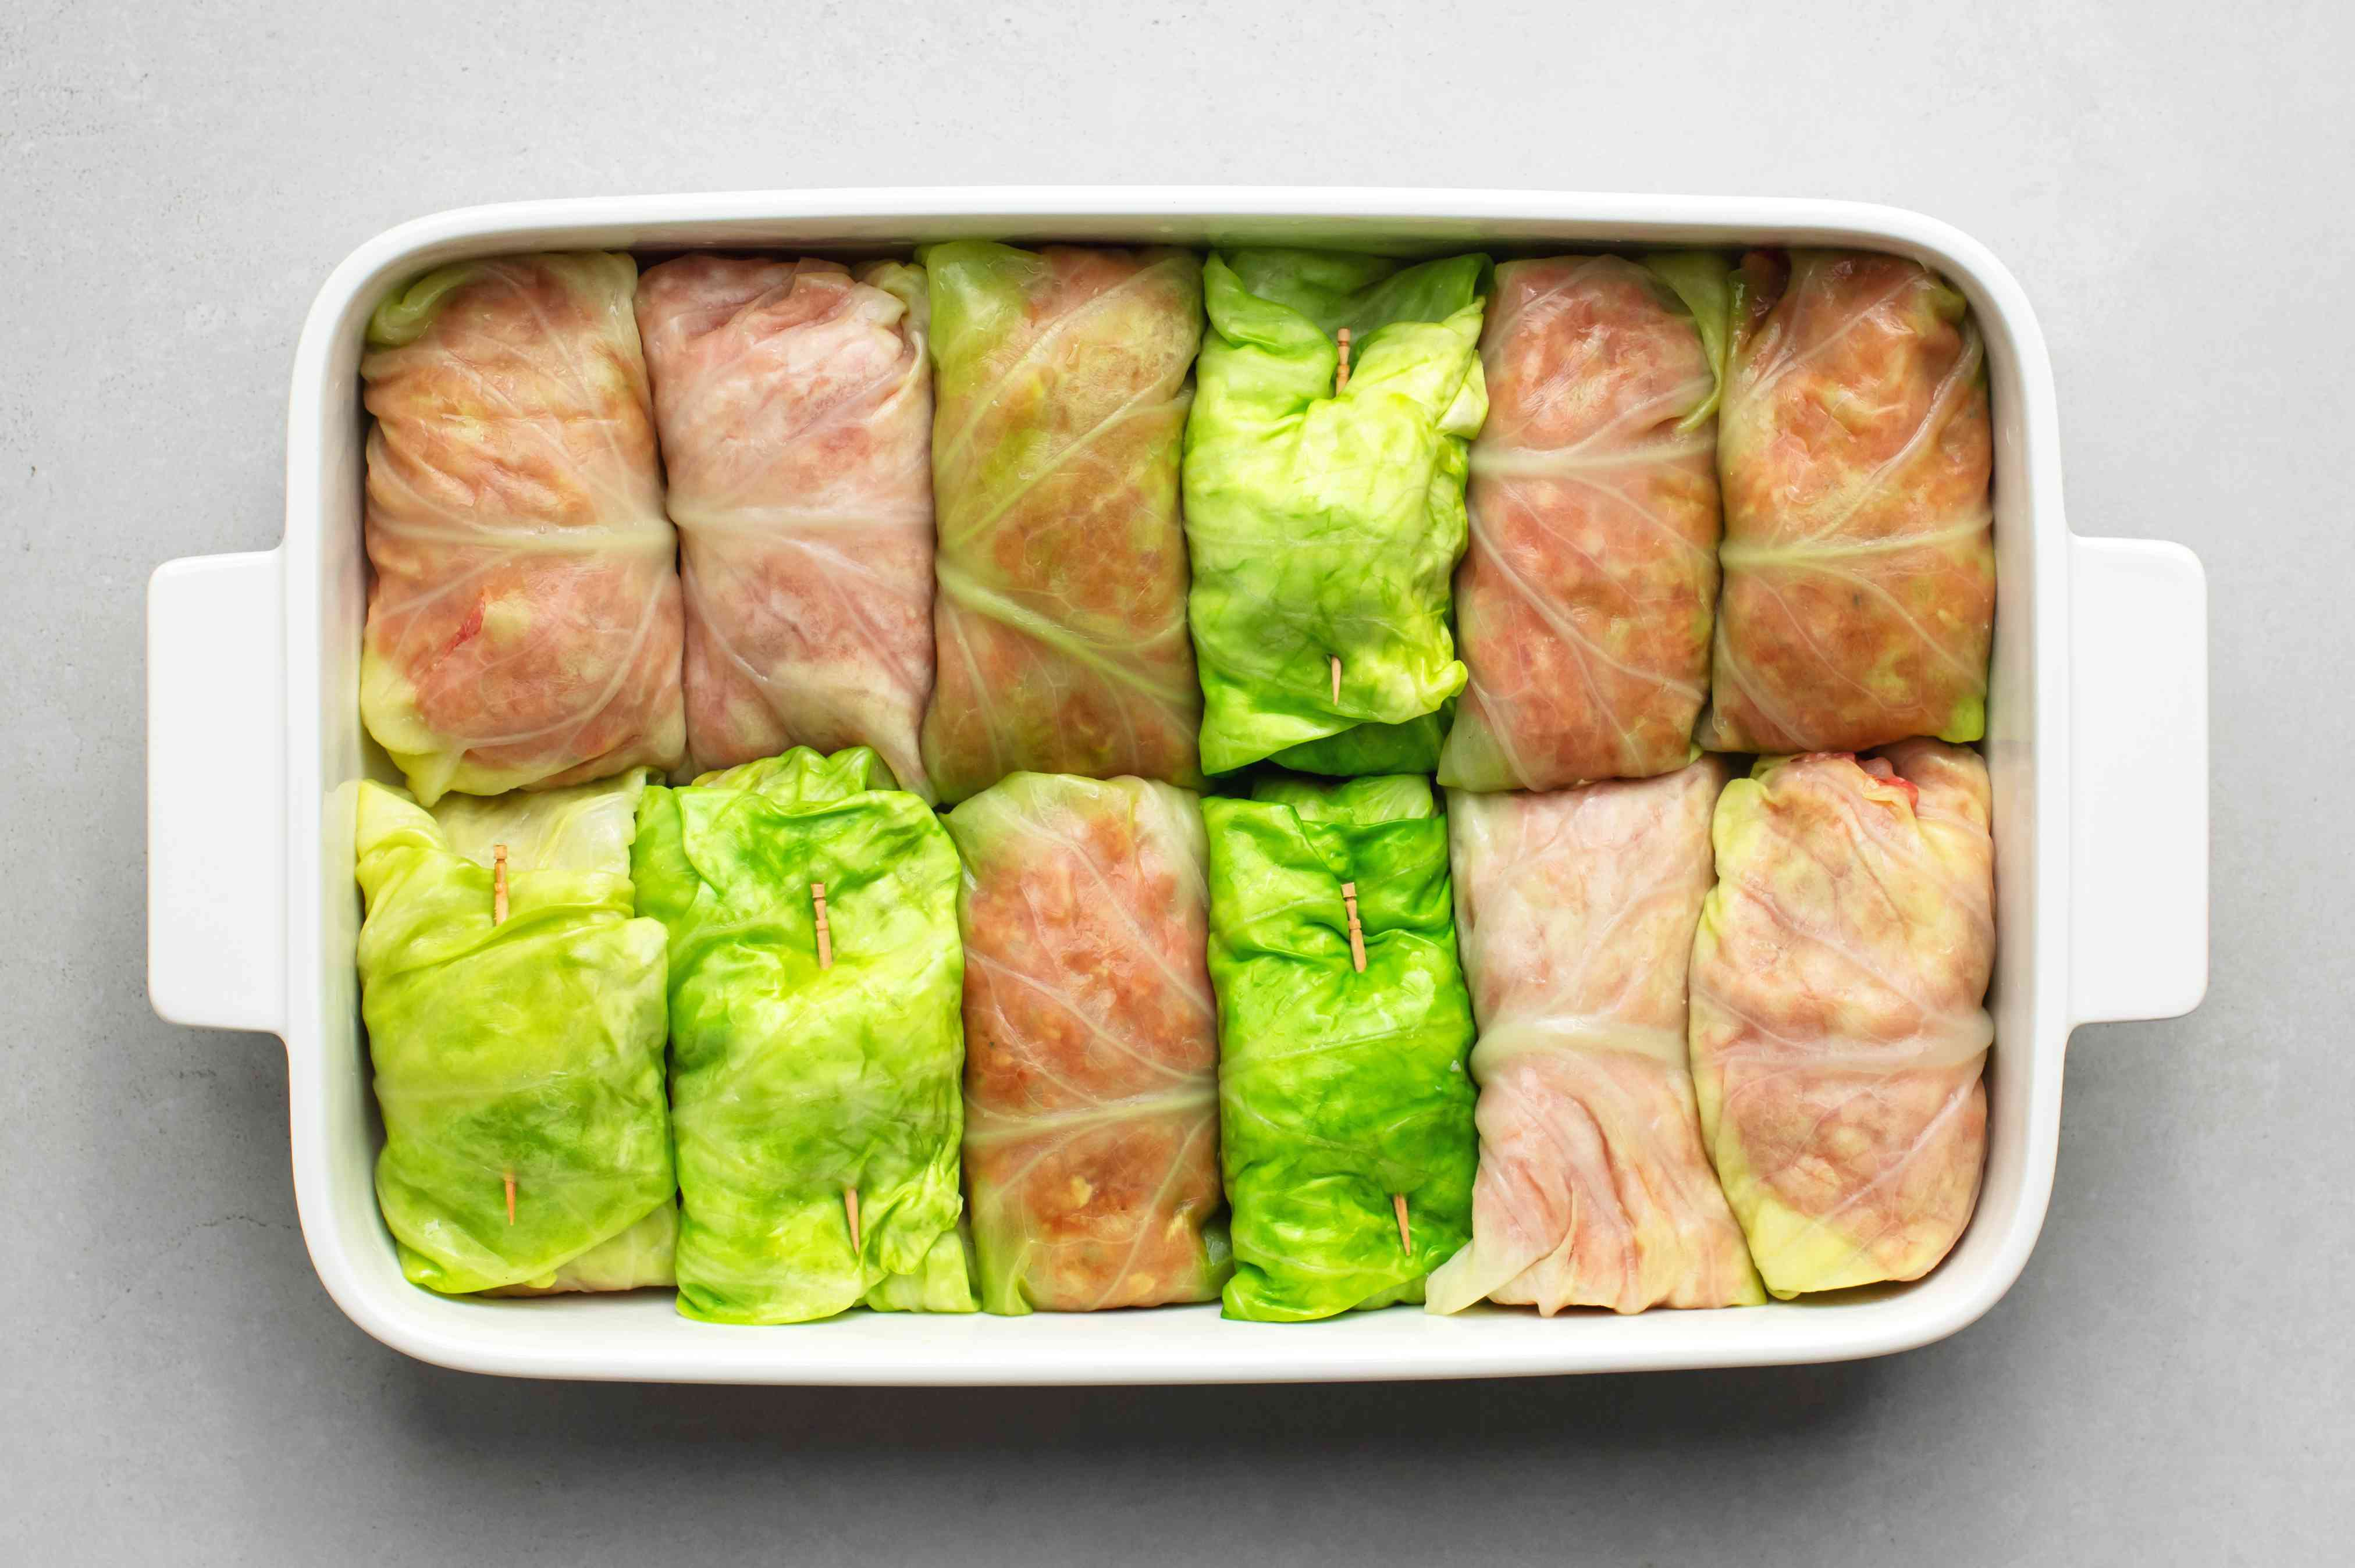 Finish stuffing the remaining cabbage leaves